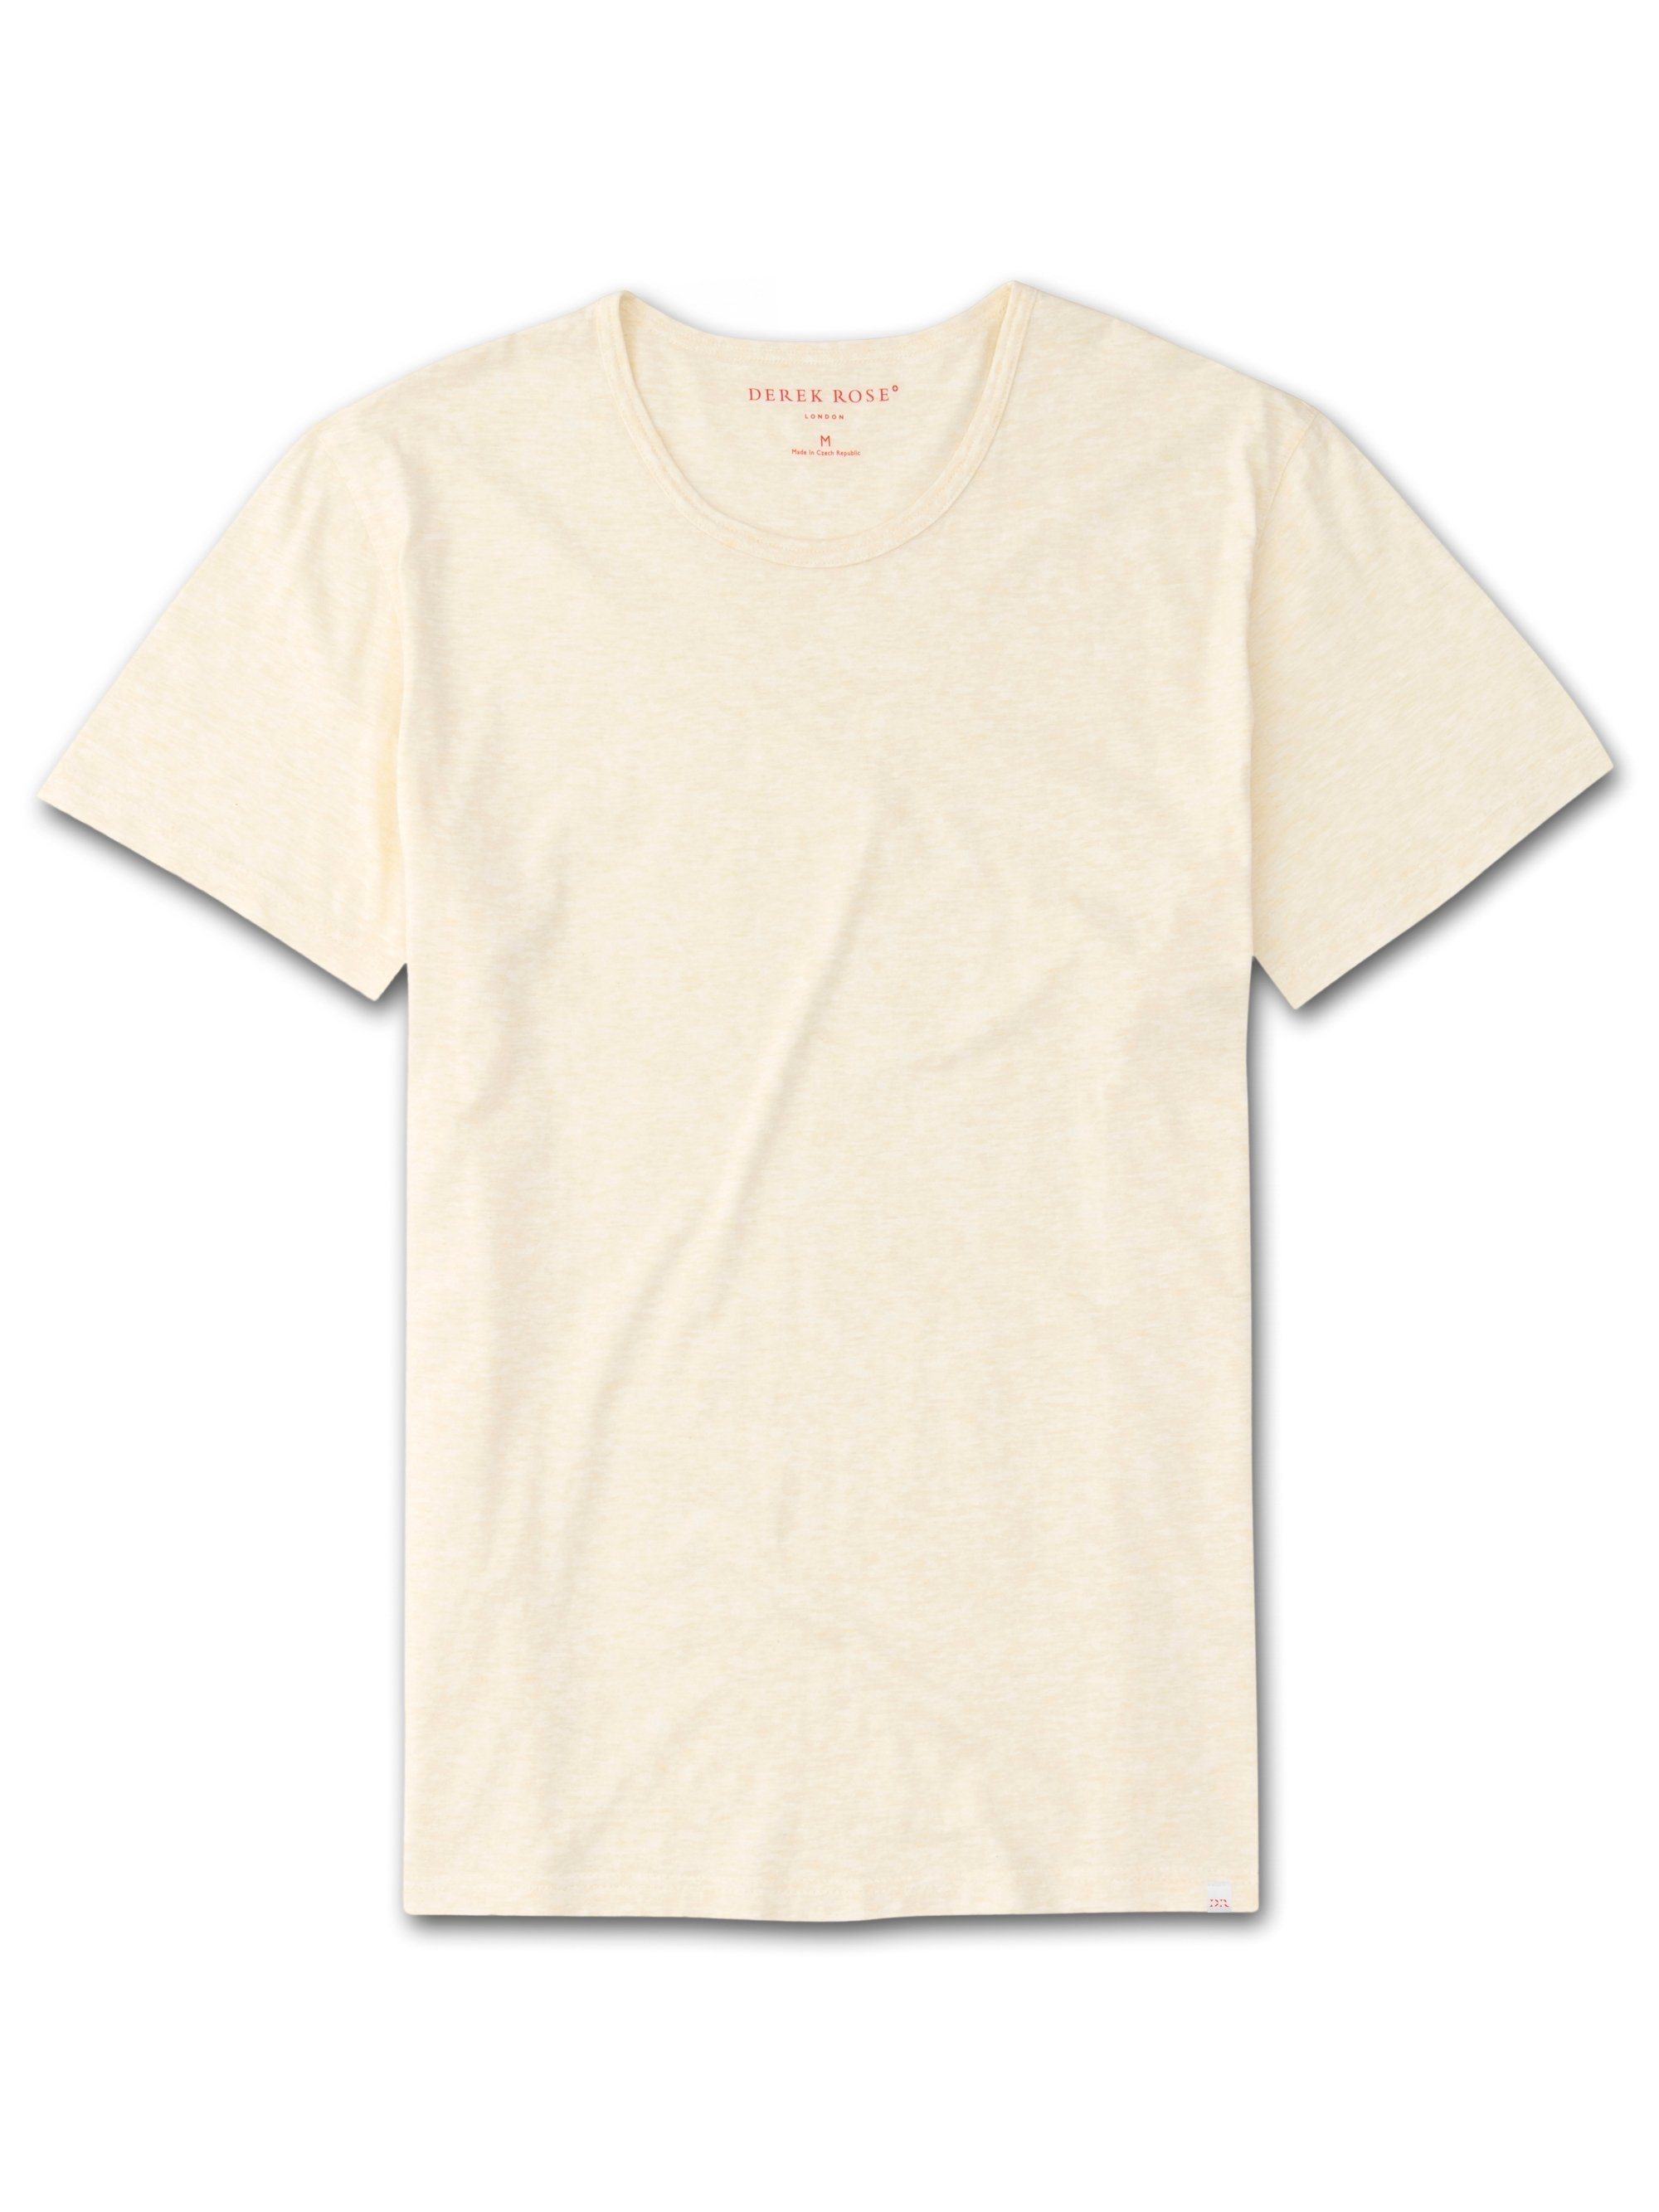 Men's Short Sleeve T-Shirt Reece Pure Cotton Yellow